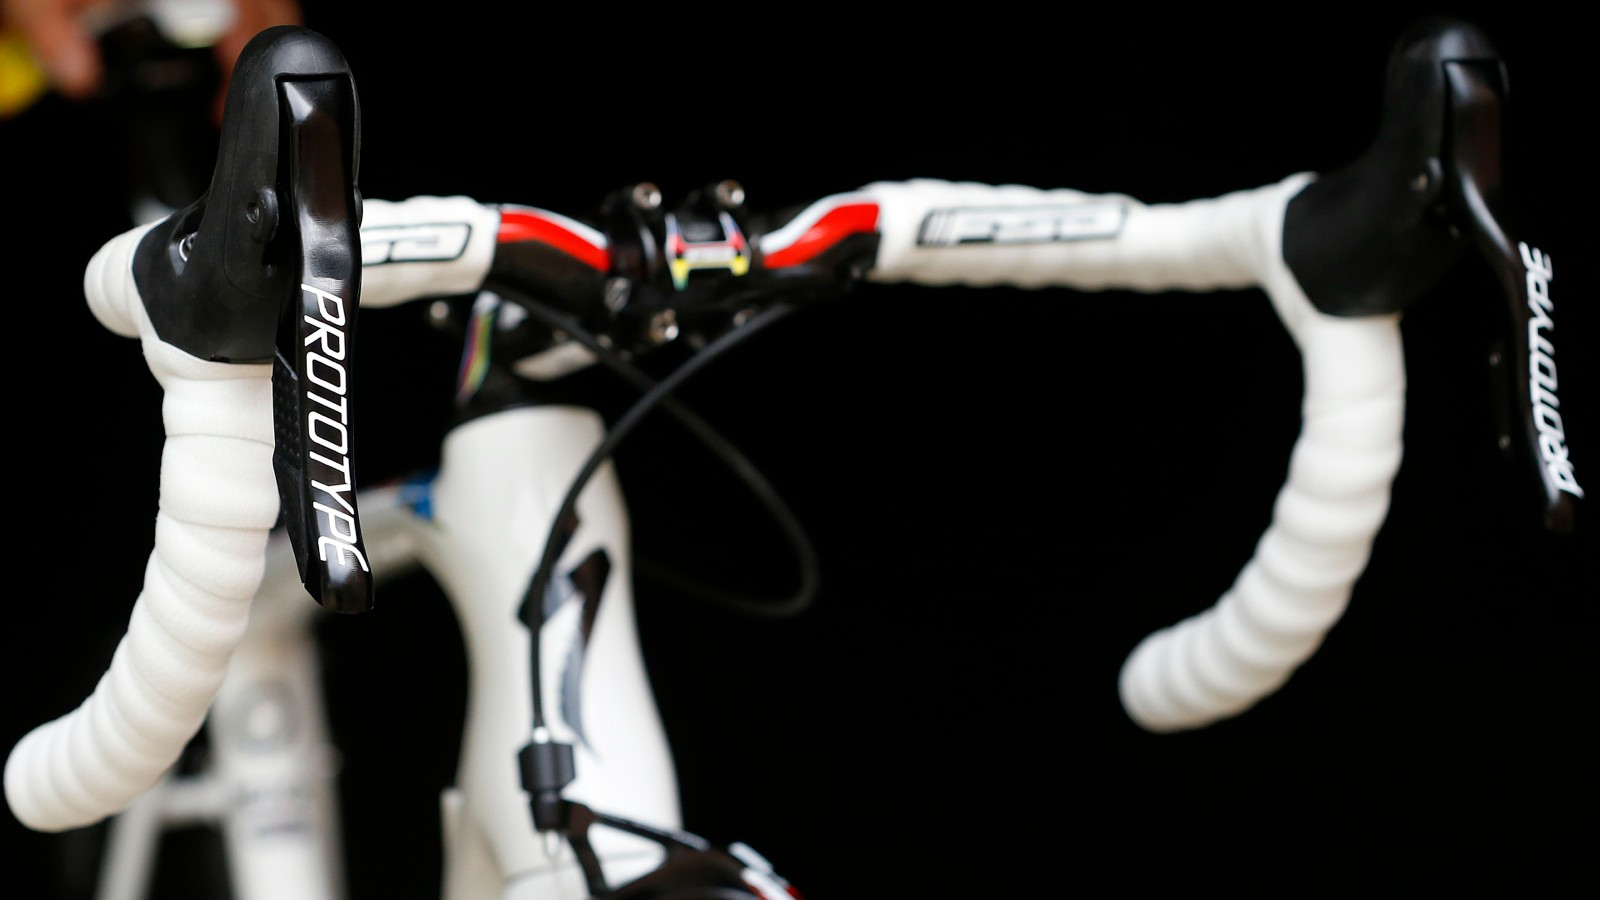 It is not yet clear which wireless protocol the FSA levers use to communicate with the derailleurs